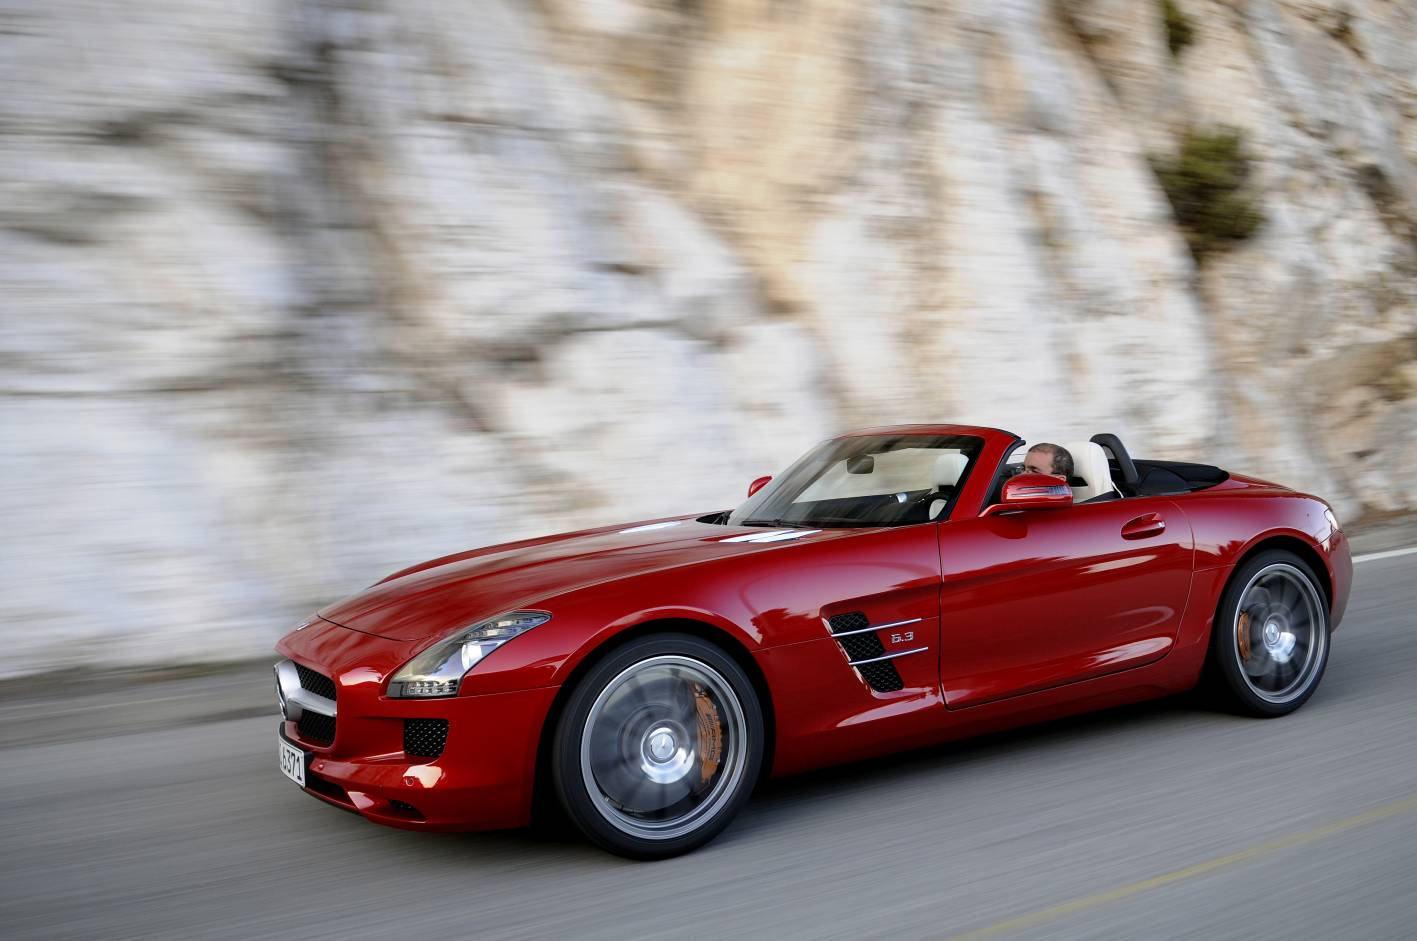 News mercedes benz sls amg roadster on sale in january for Mercedes benz sls amg convertible for sale